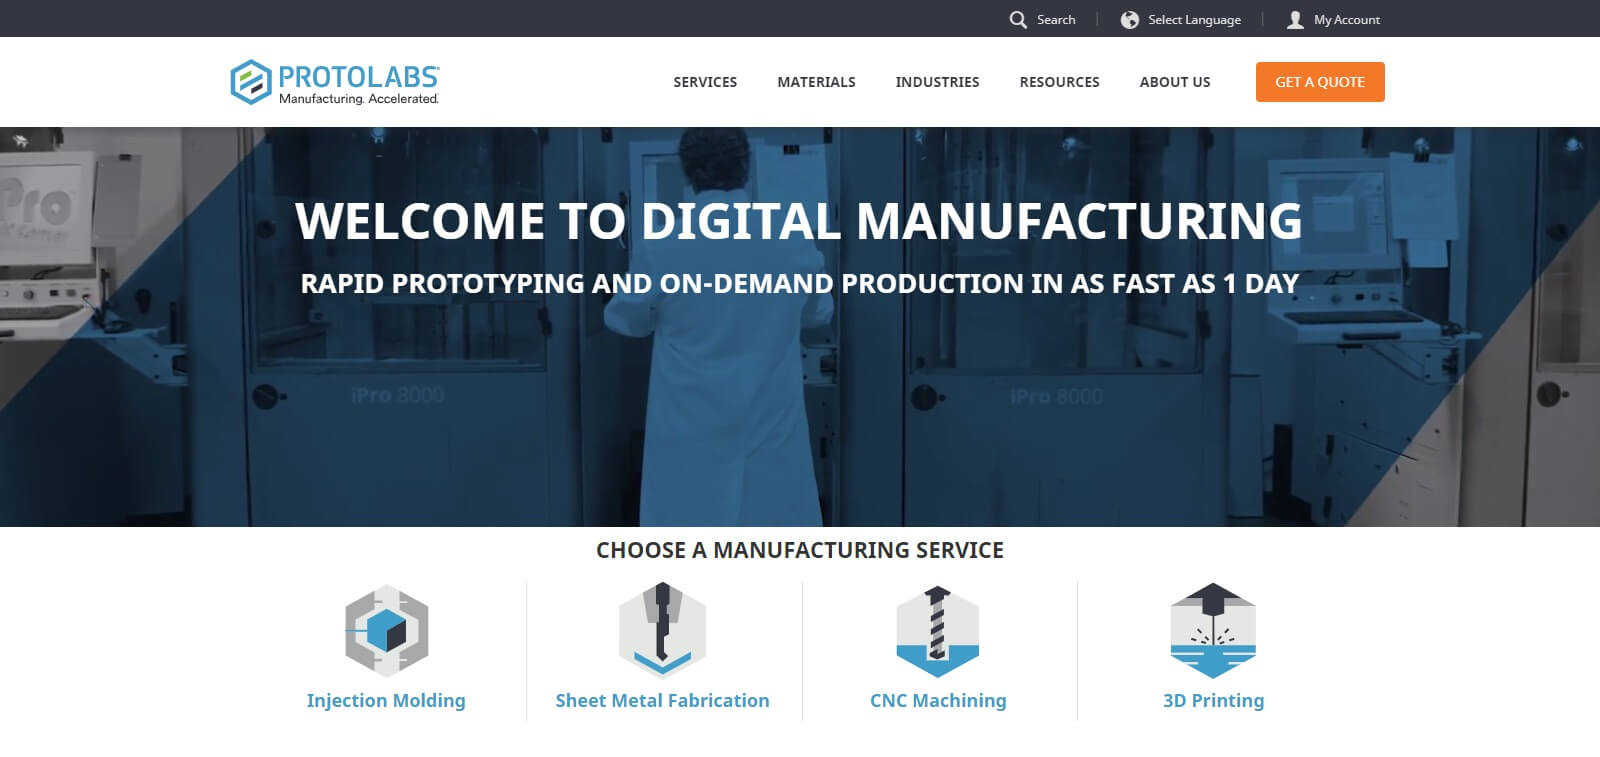 Protolabs - Rapid Prototyping & On-demand Production - www.protolabs.com